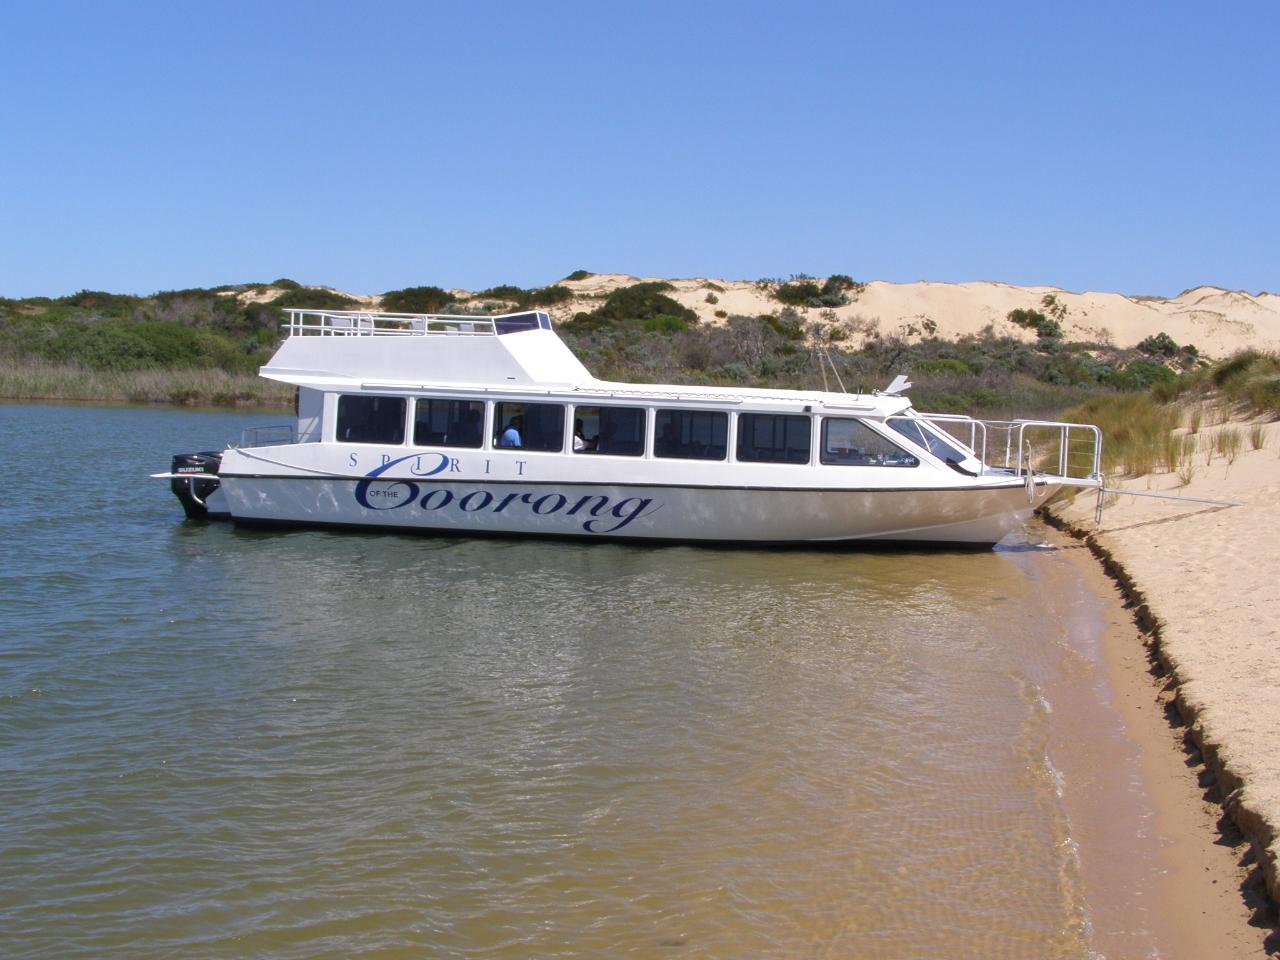 Spirit of Coorong River Murray Mouth & Fleurieu Peninsula Tour - EX Adelaide, Glenelg & Hahndorf